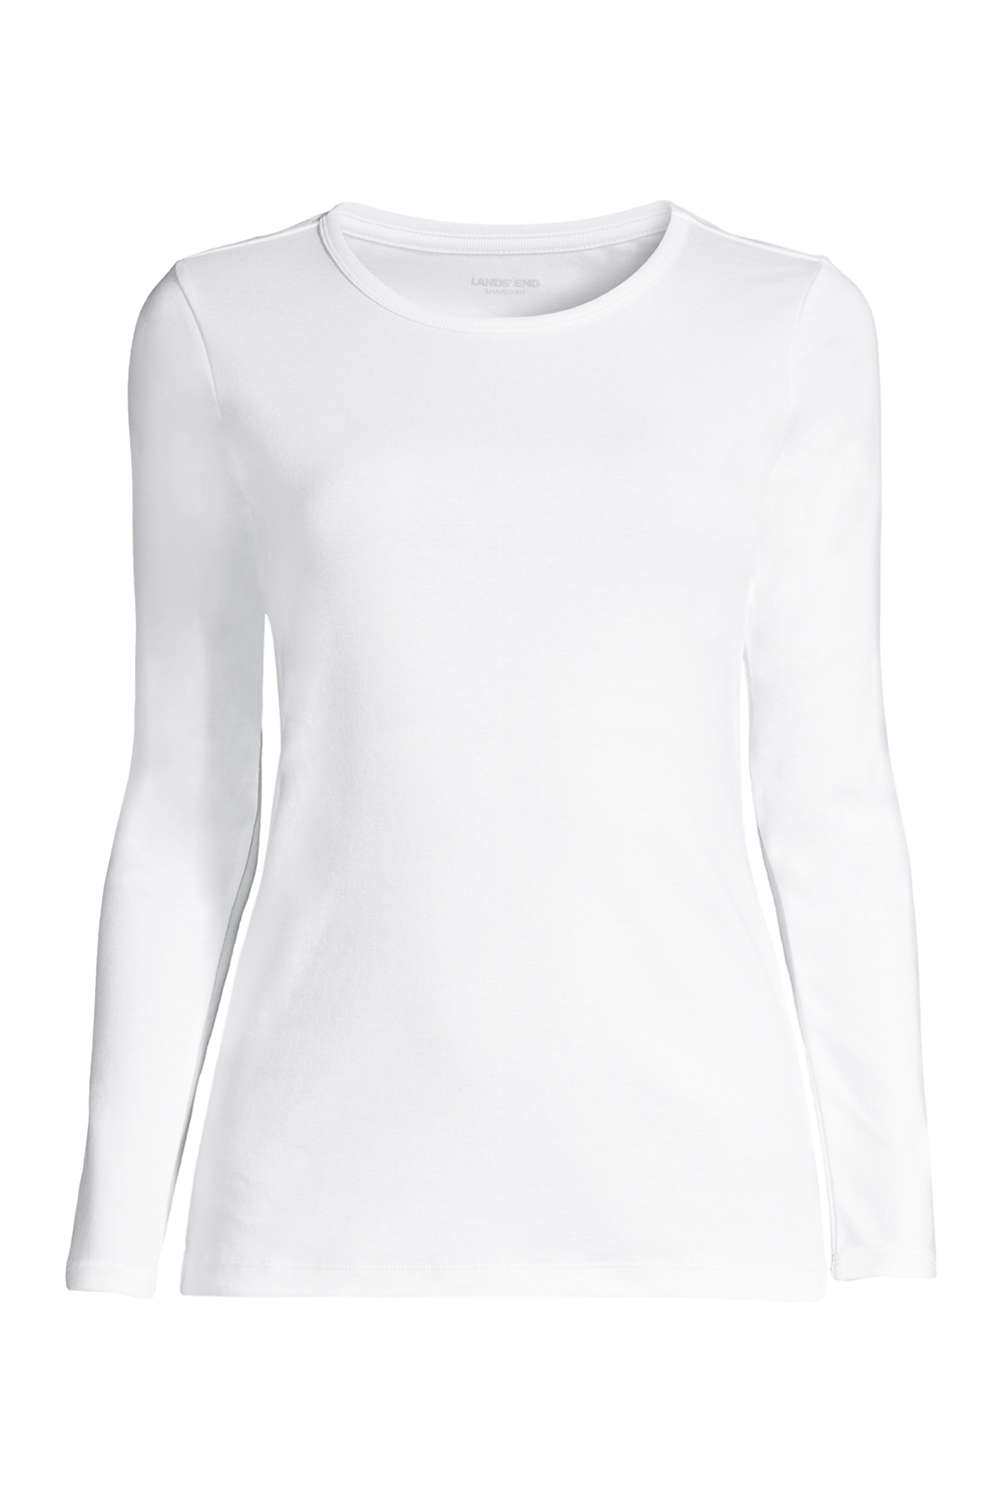 9a516ccd Women's All Cotton Long Sleeve T-Shirt - Rib Knit Crewneck from Lands' End